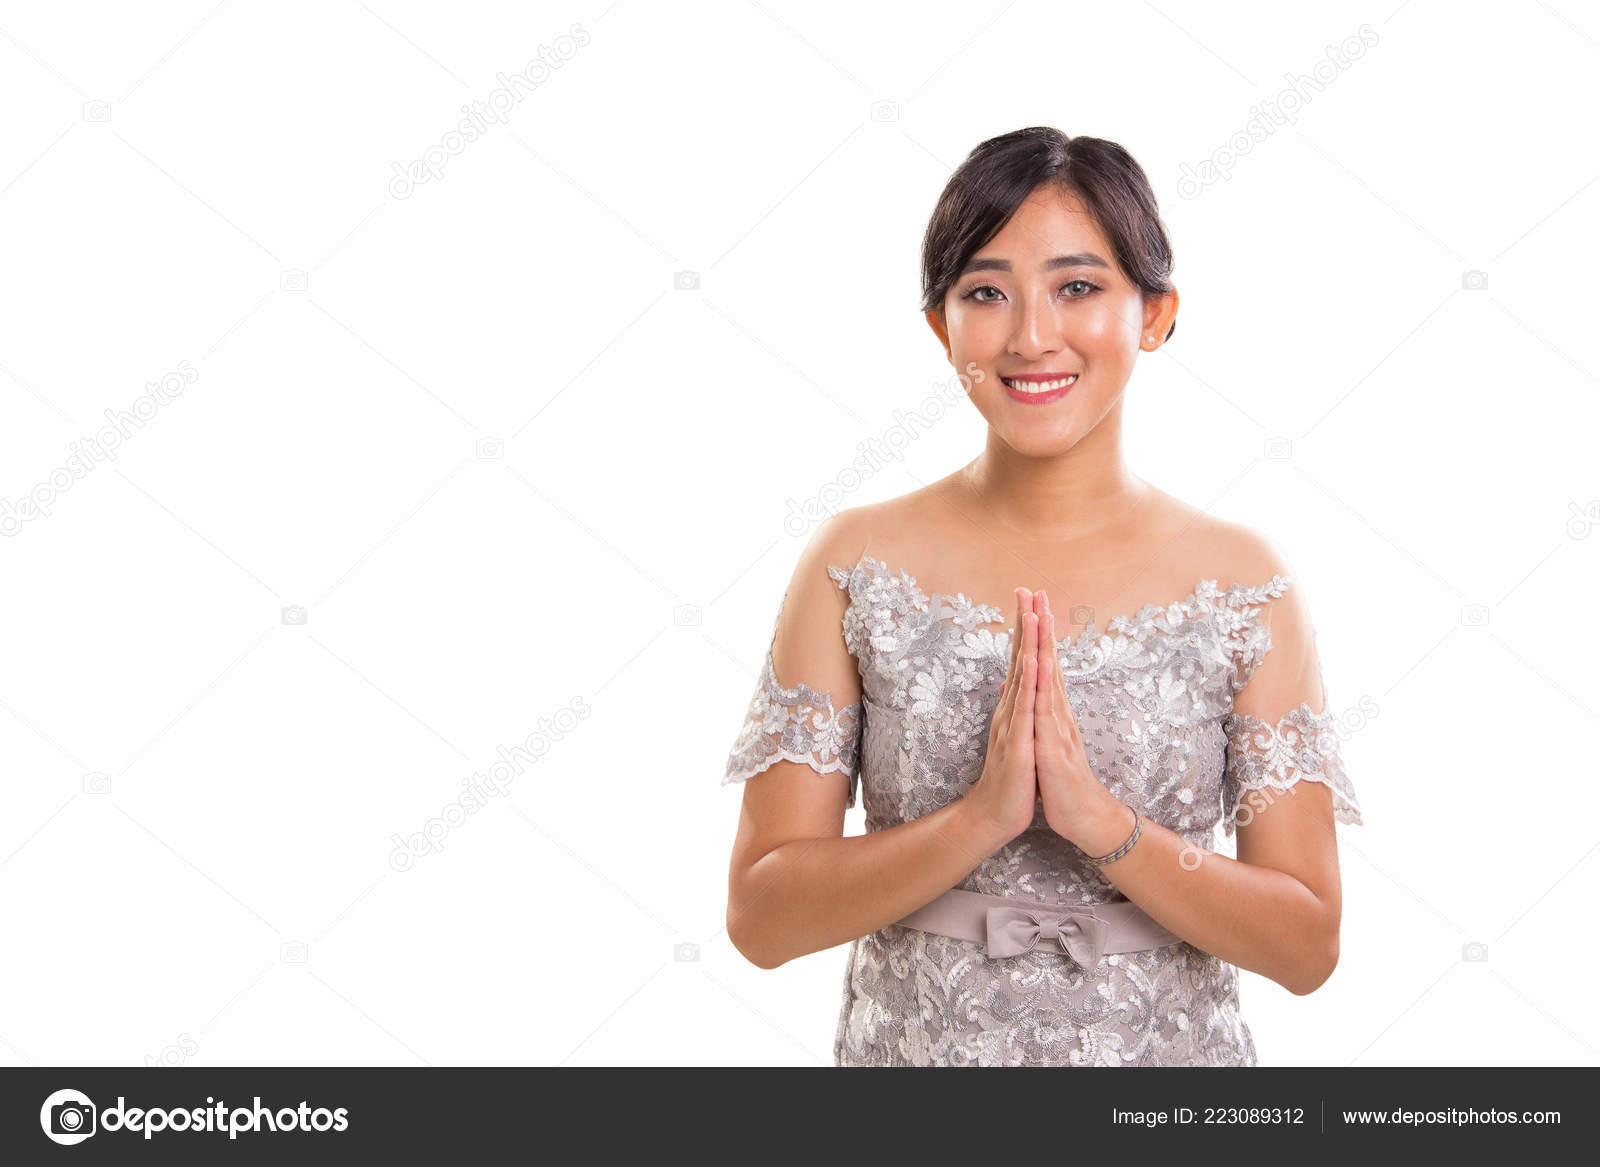 3df585a99 Warm greeting of young attractive female model of Southeast Asia ethnicity  wearing traditional formal attire posing with both palms clapping, ...